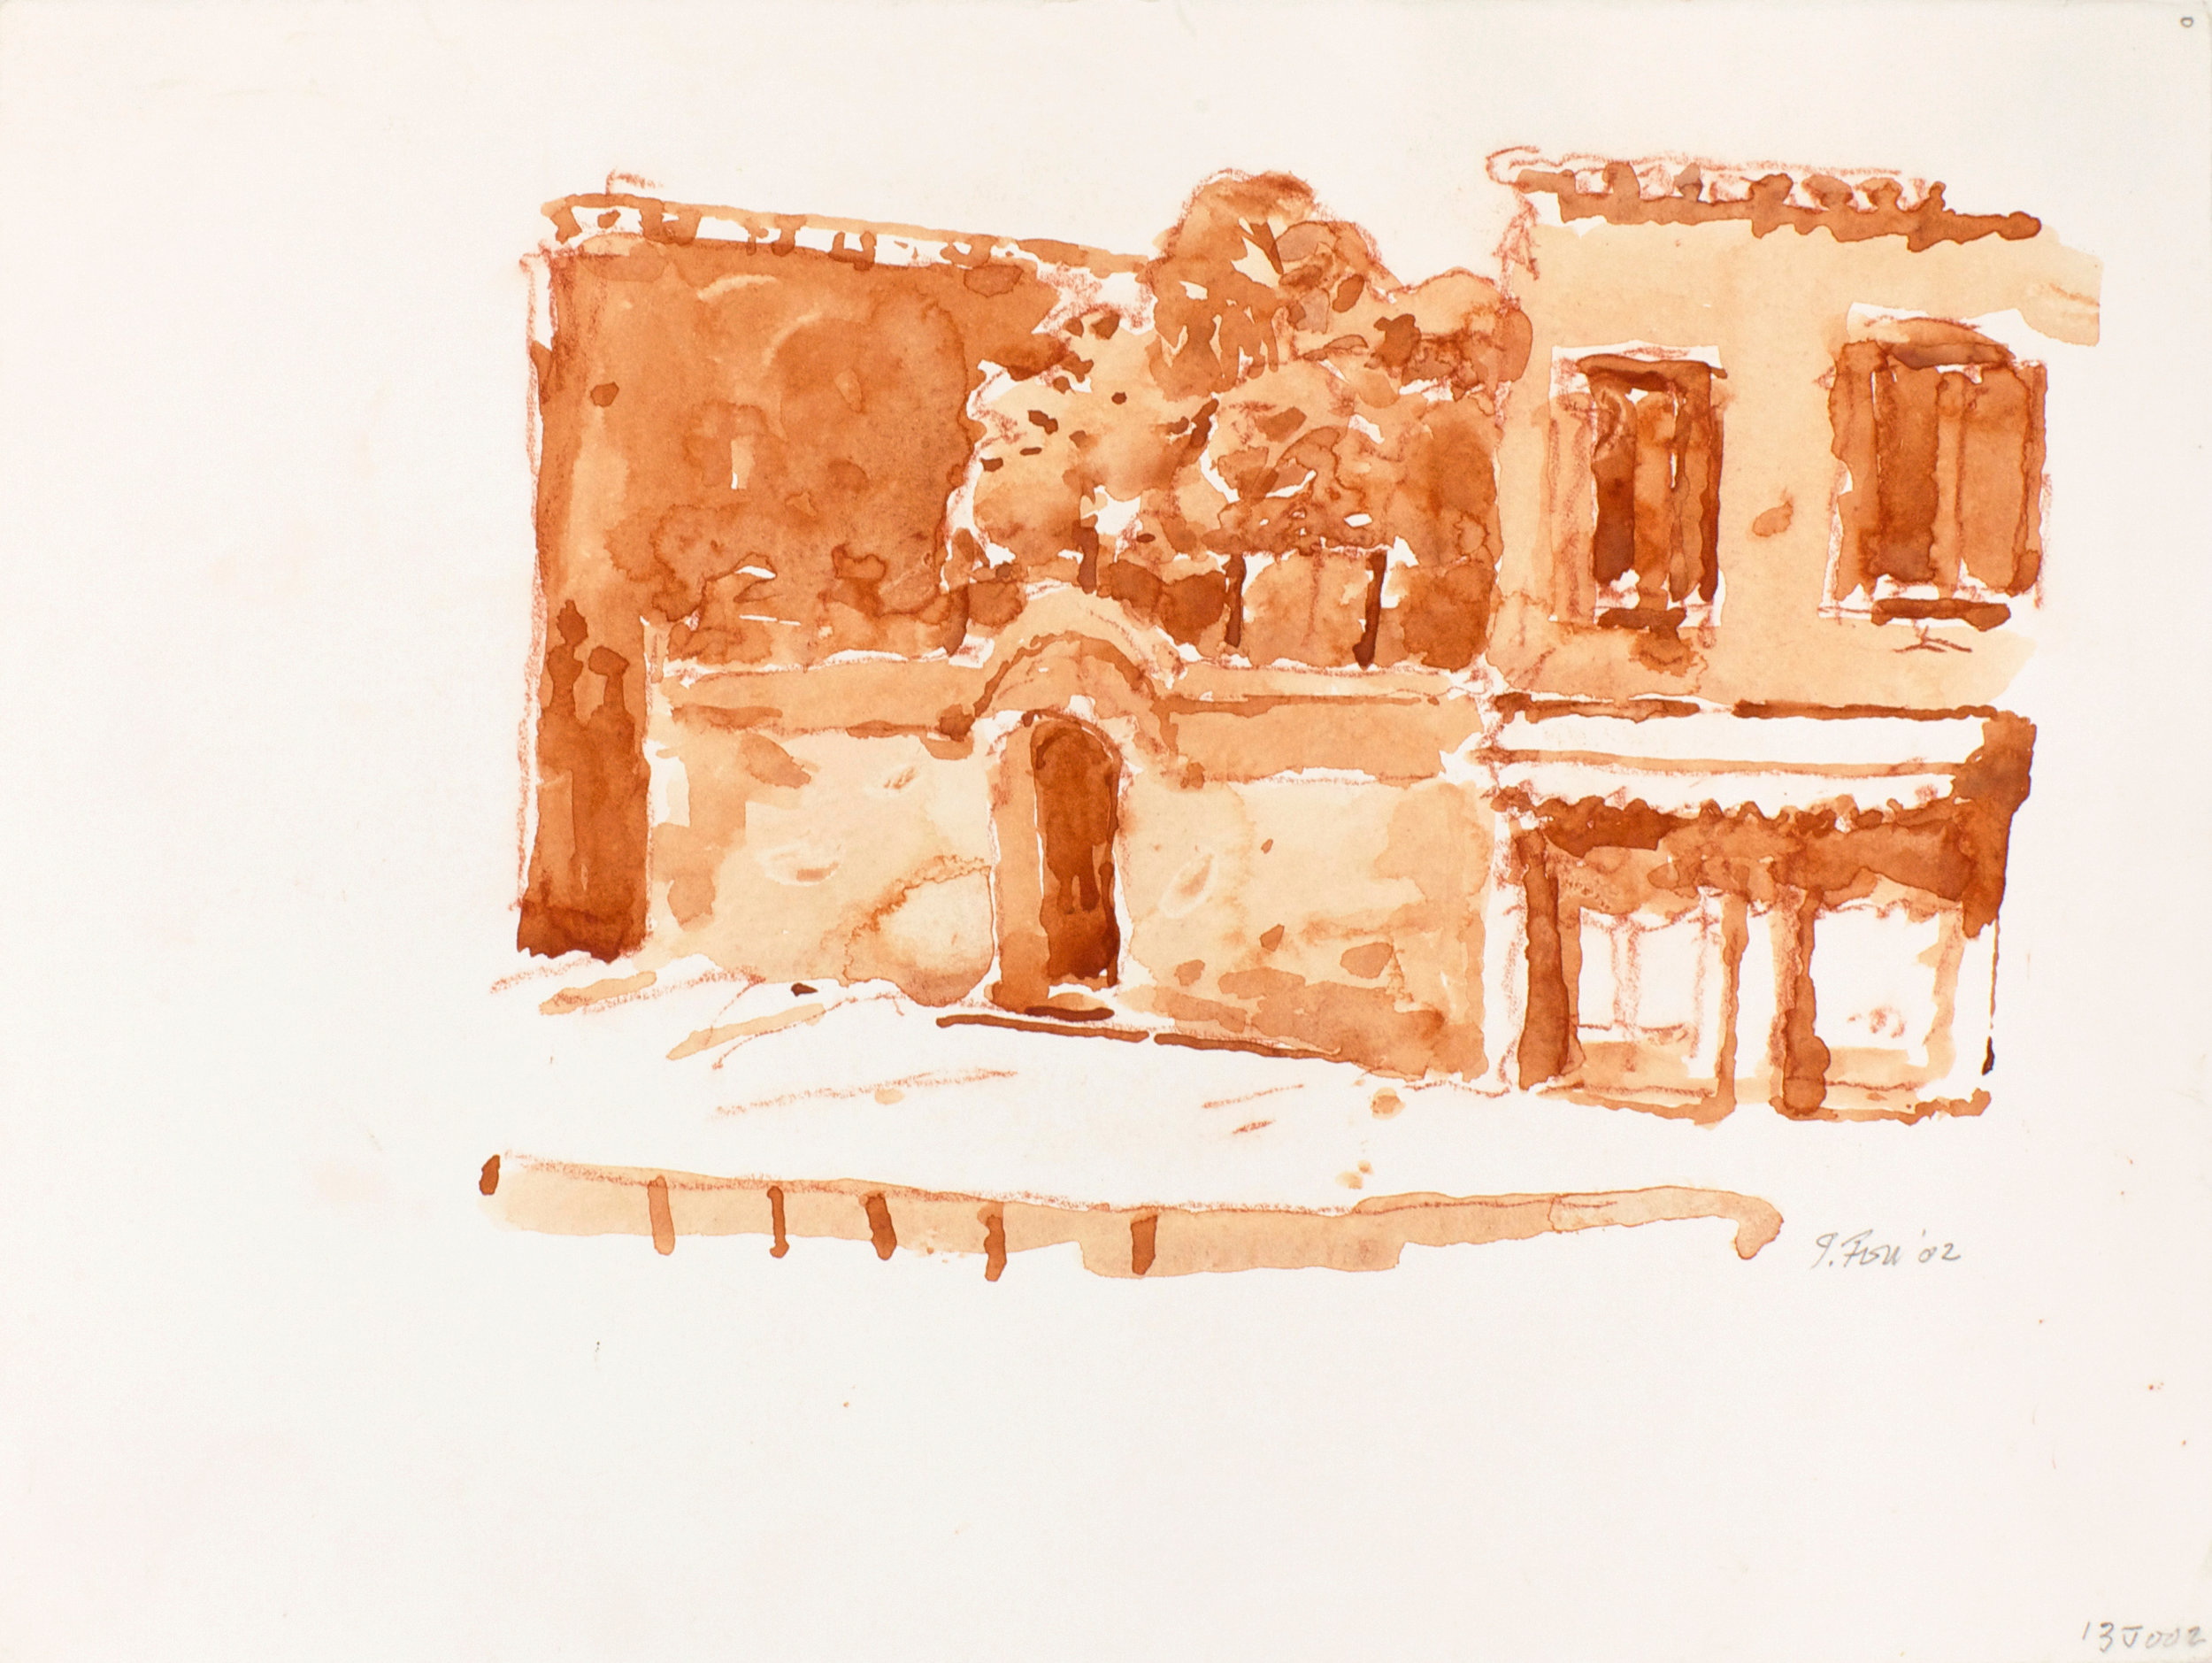 2002_Front_of_Shop_Venice_watercolour_and_red_conte_on_paper_11x15in_WPF028.jpg